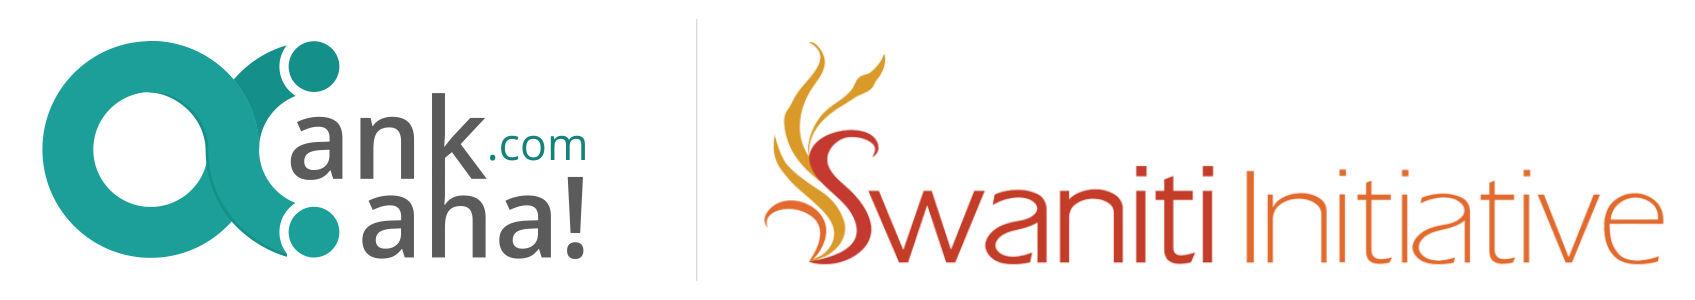 ankaha & Swaniti Initiative